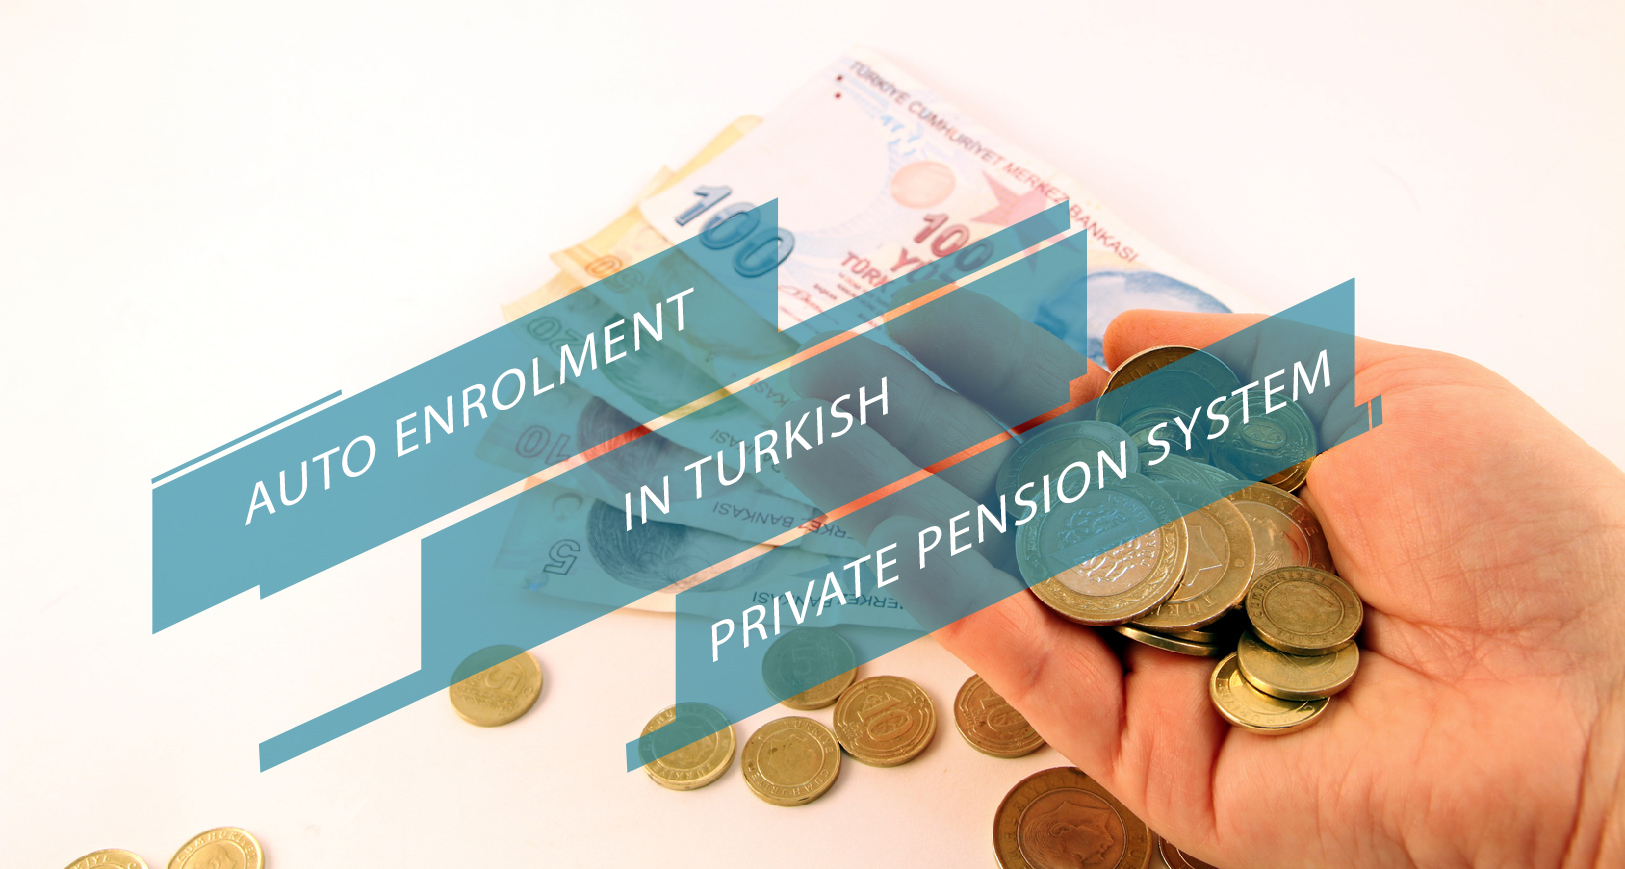 NEW AMENDMENT ON AUTOMATIC ENROLLMENT IN PRIVATE PENSION INSURANCE HAS BEEN RELEASED